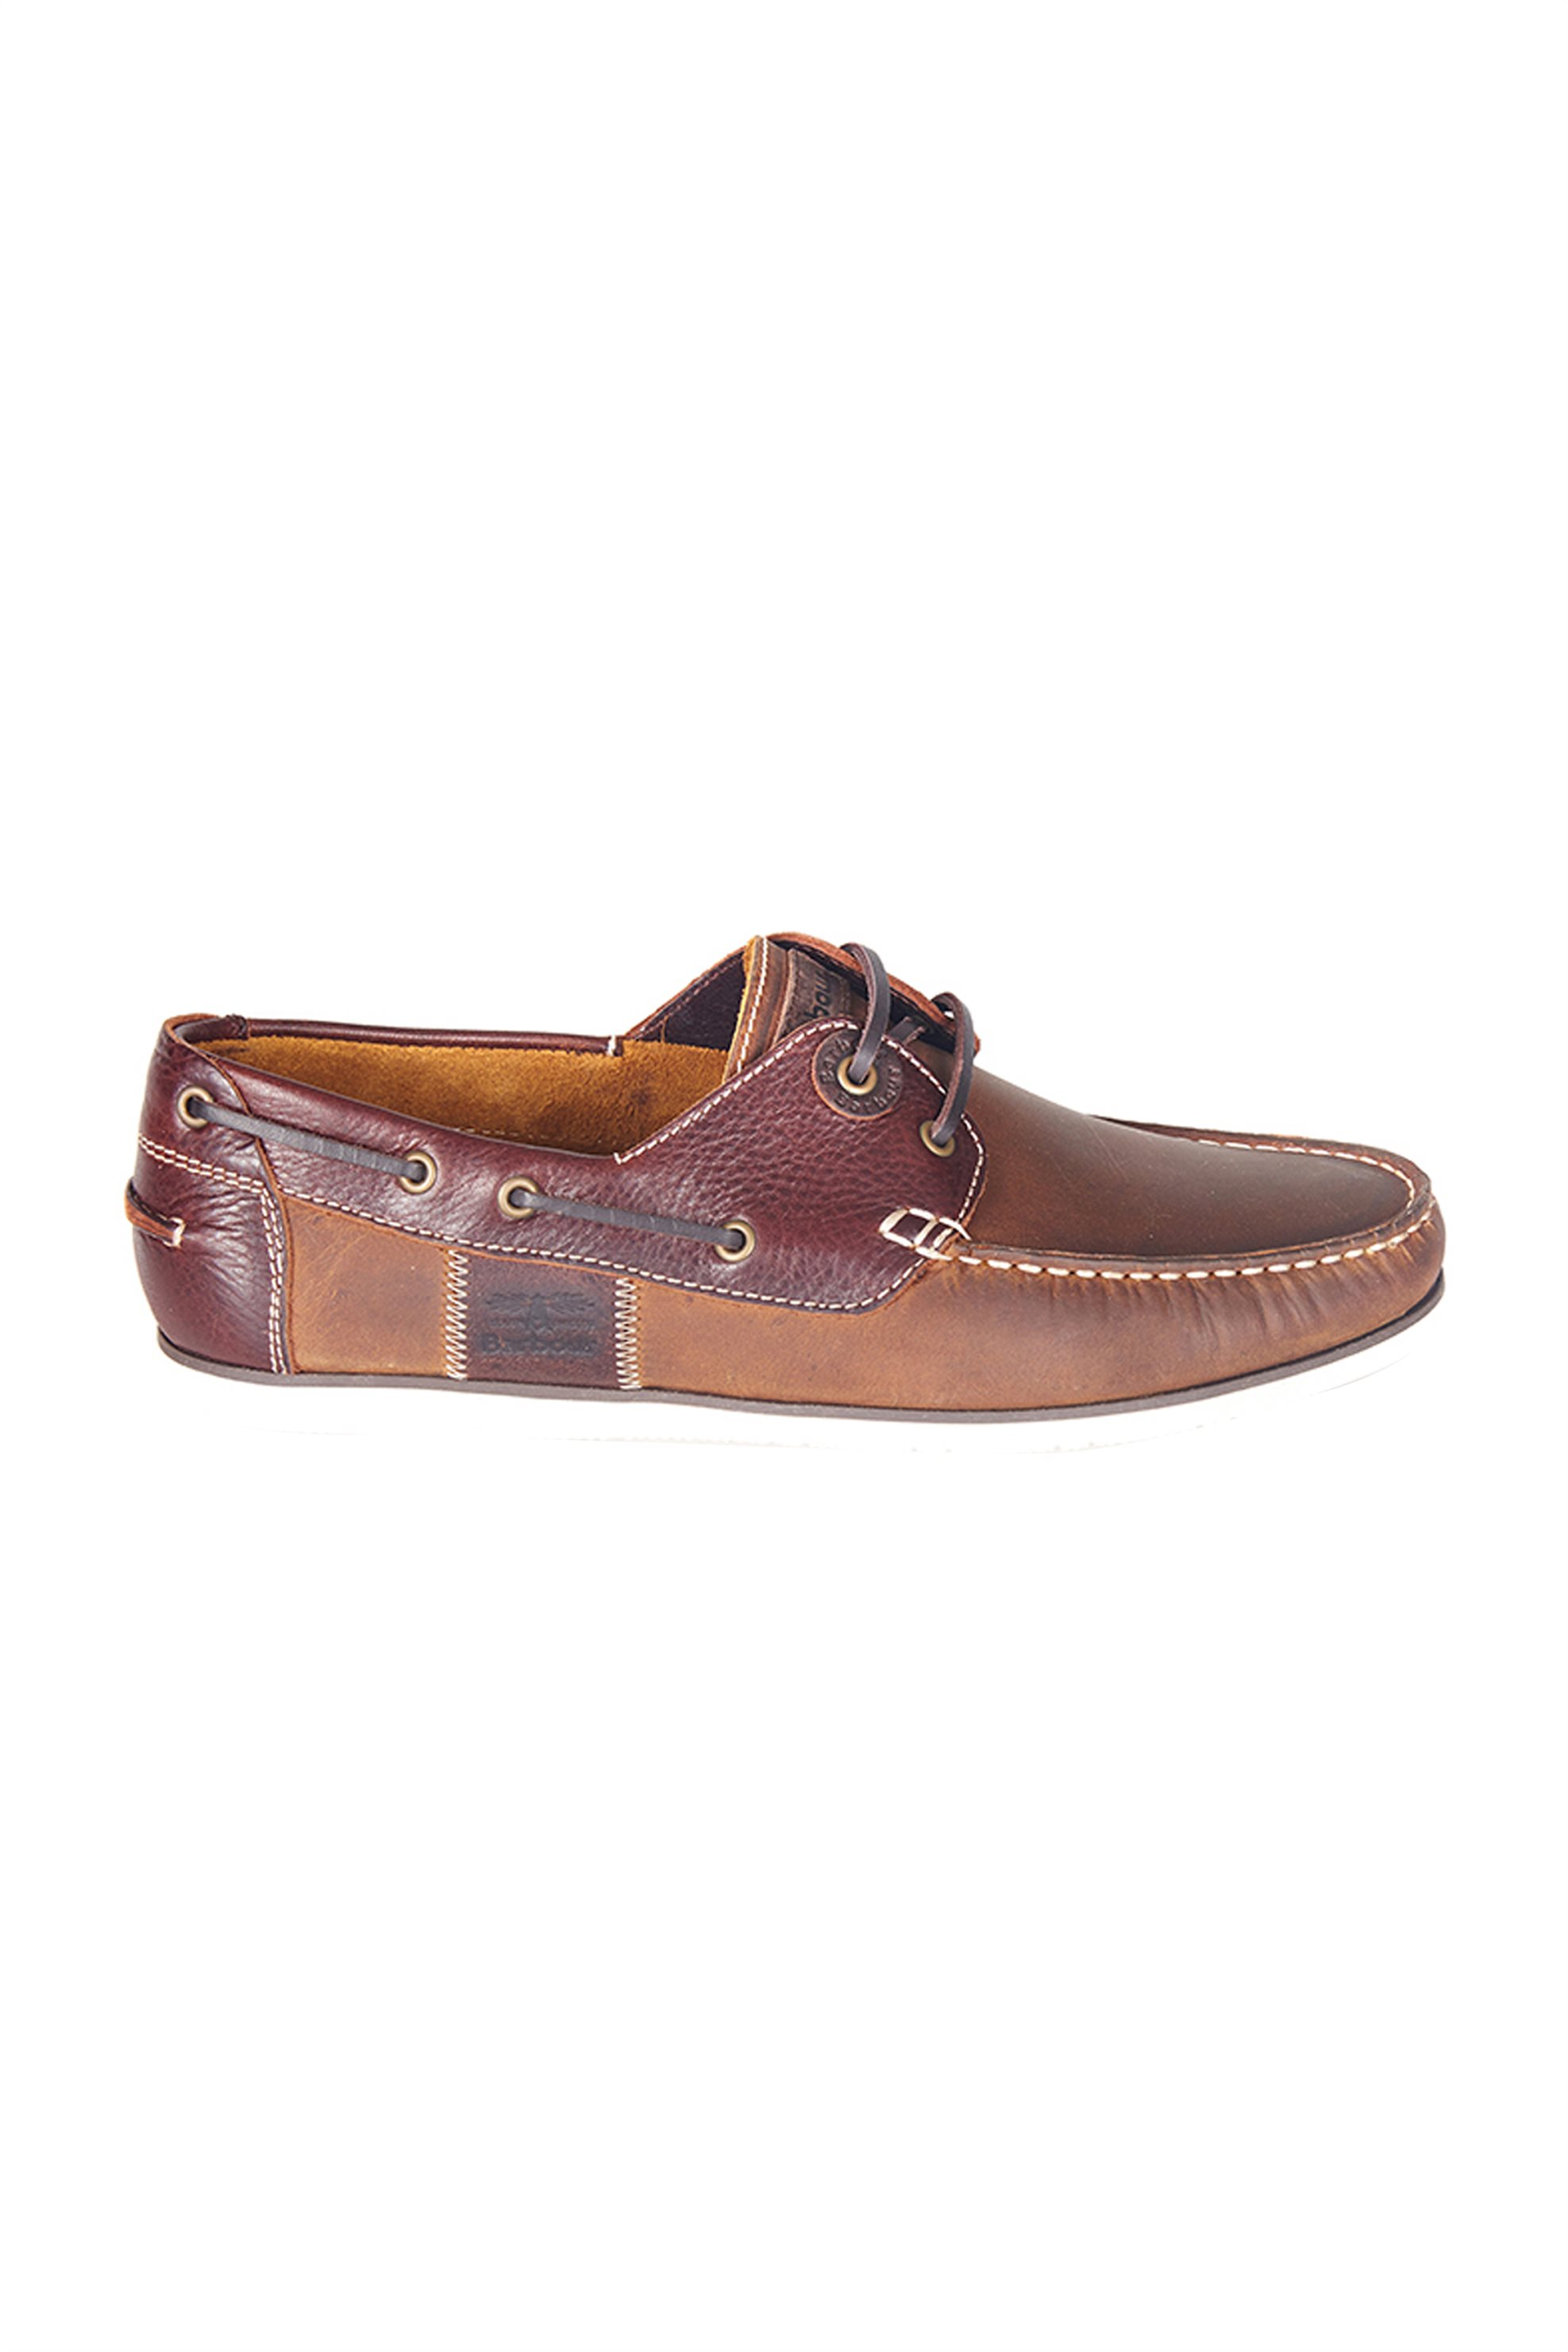 Barbour ανδρικά boat shoes Capstan - MFO0304 - Ταμπά